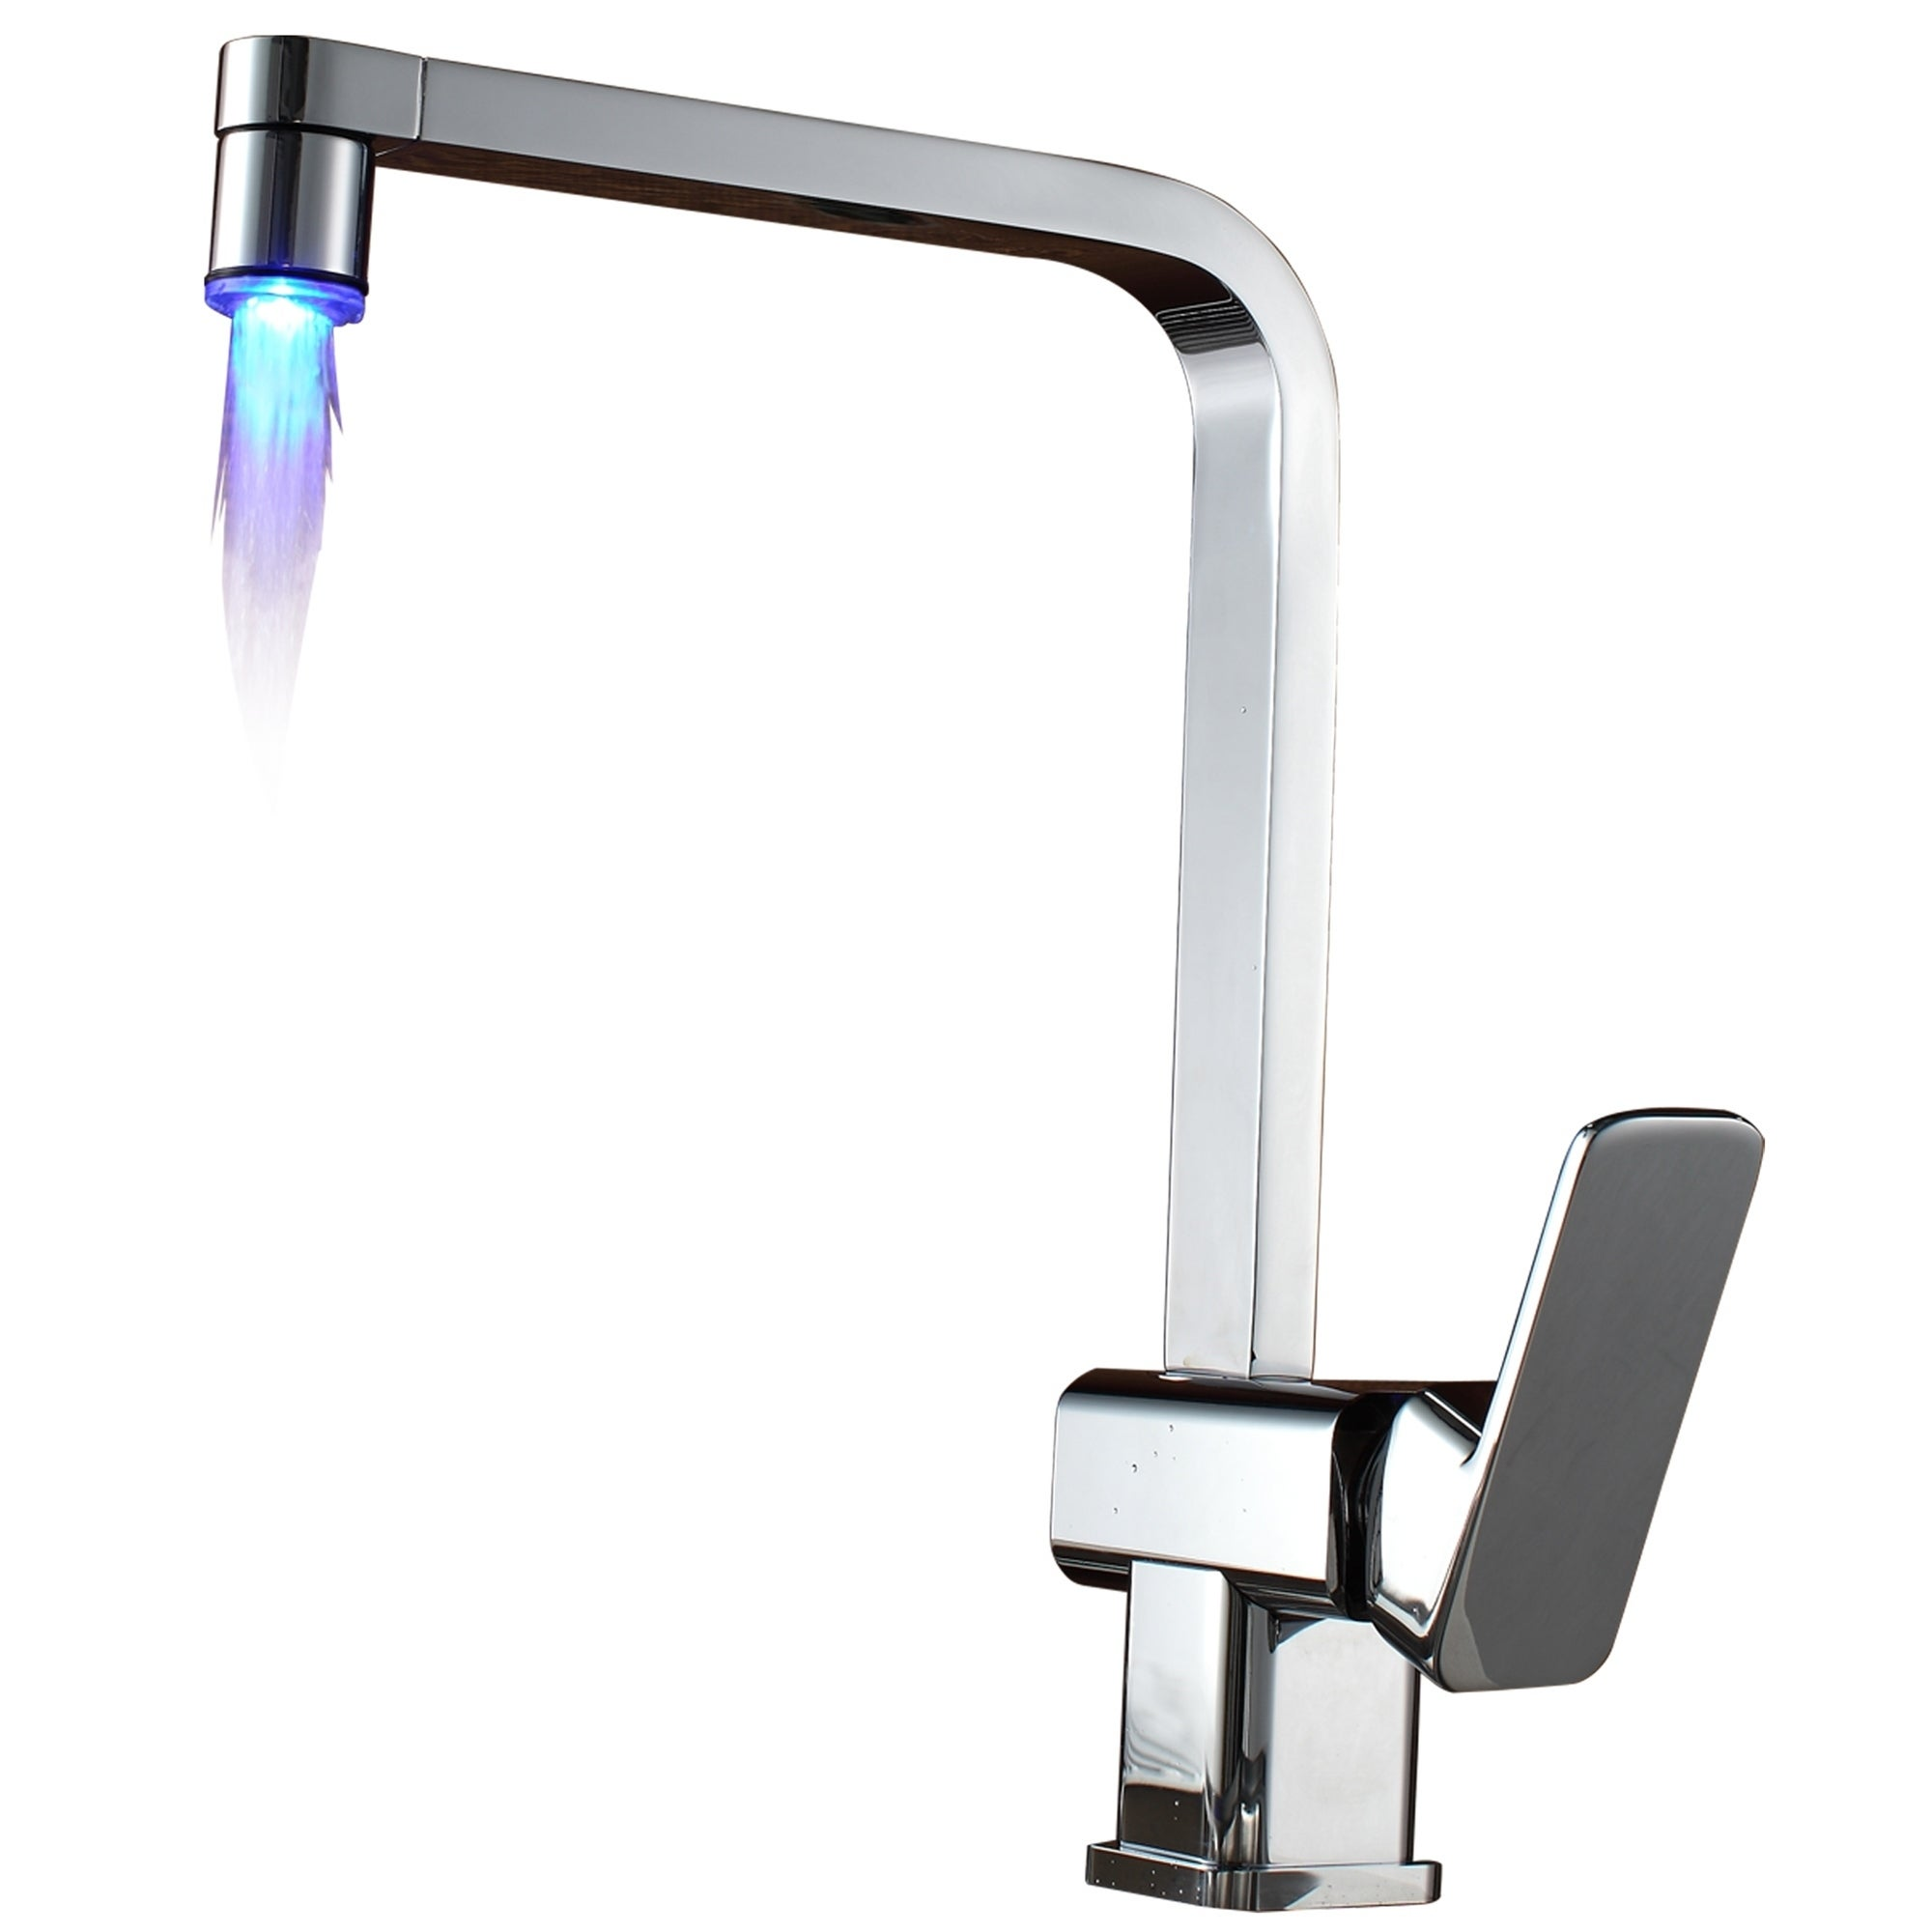 Sumerain LED Kitchen Faucet (Contemporary), Blue waterfall